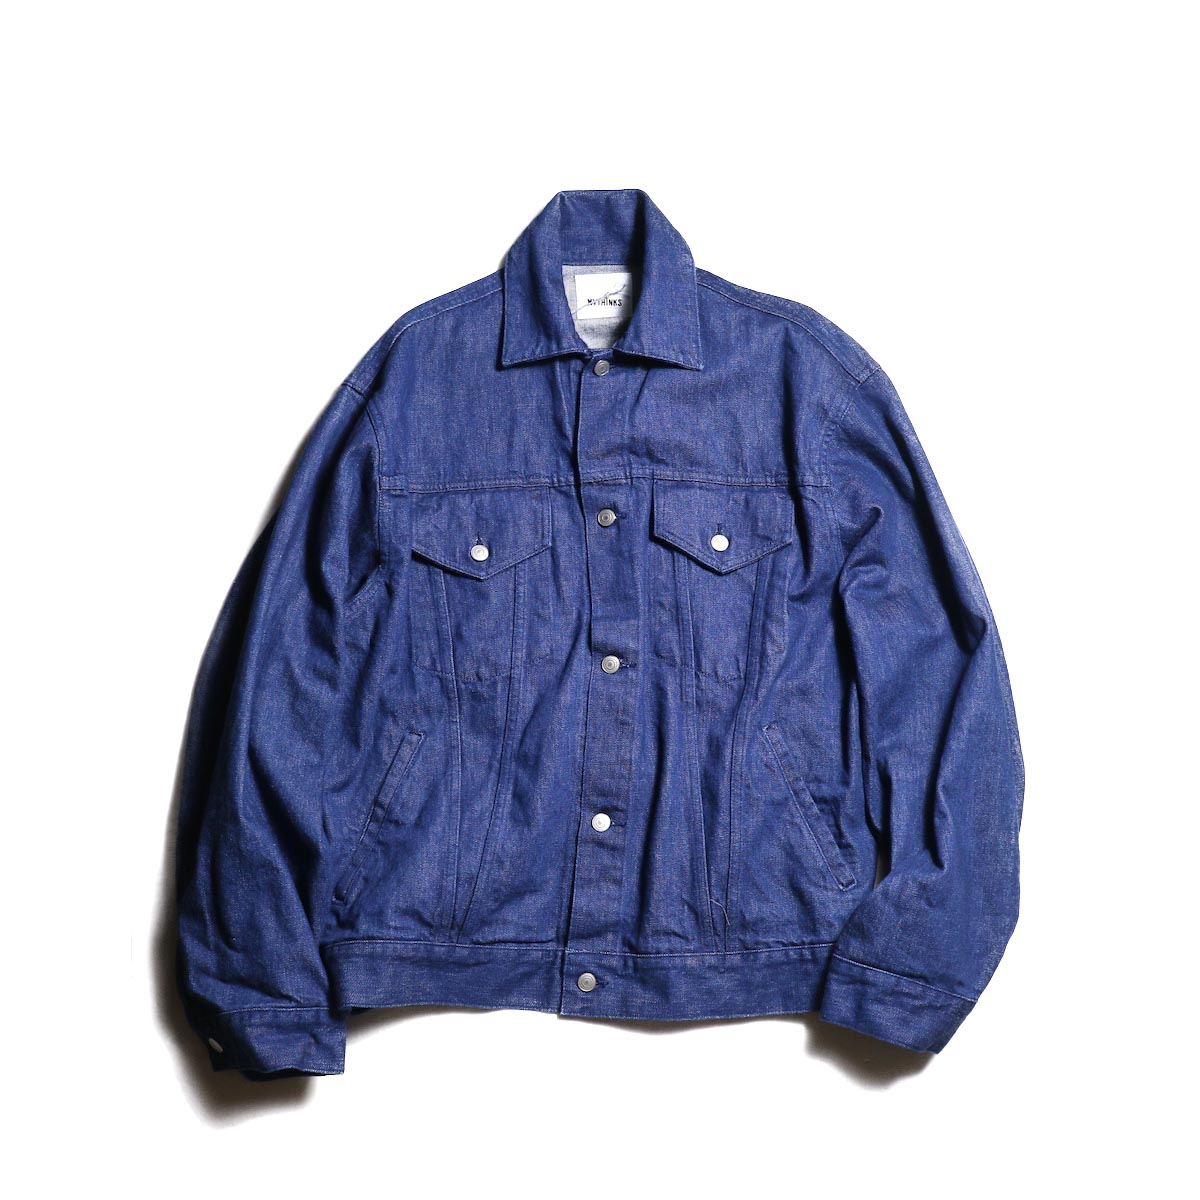 MYTHINKS / MY BIG G-Jacket (Autumn Blue)